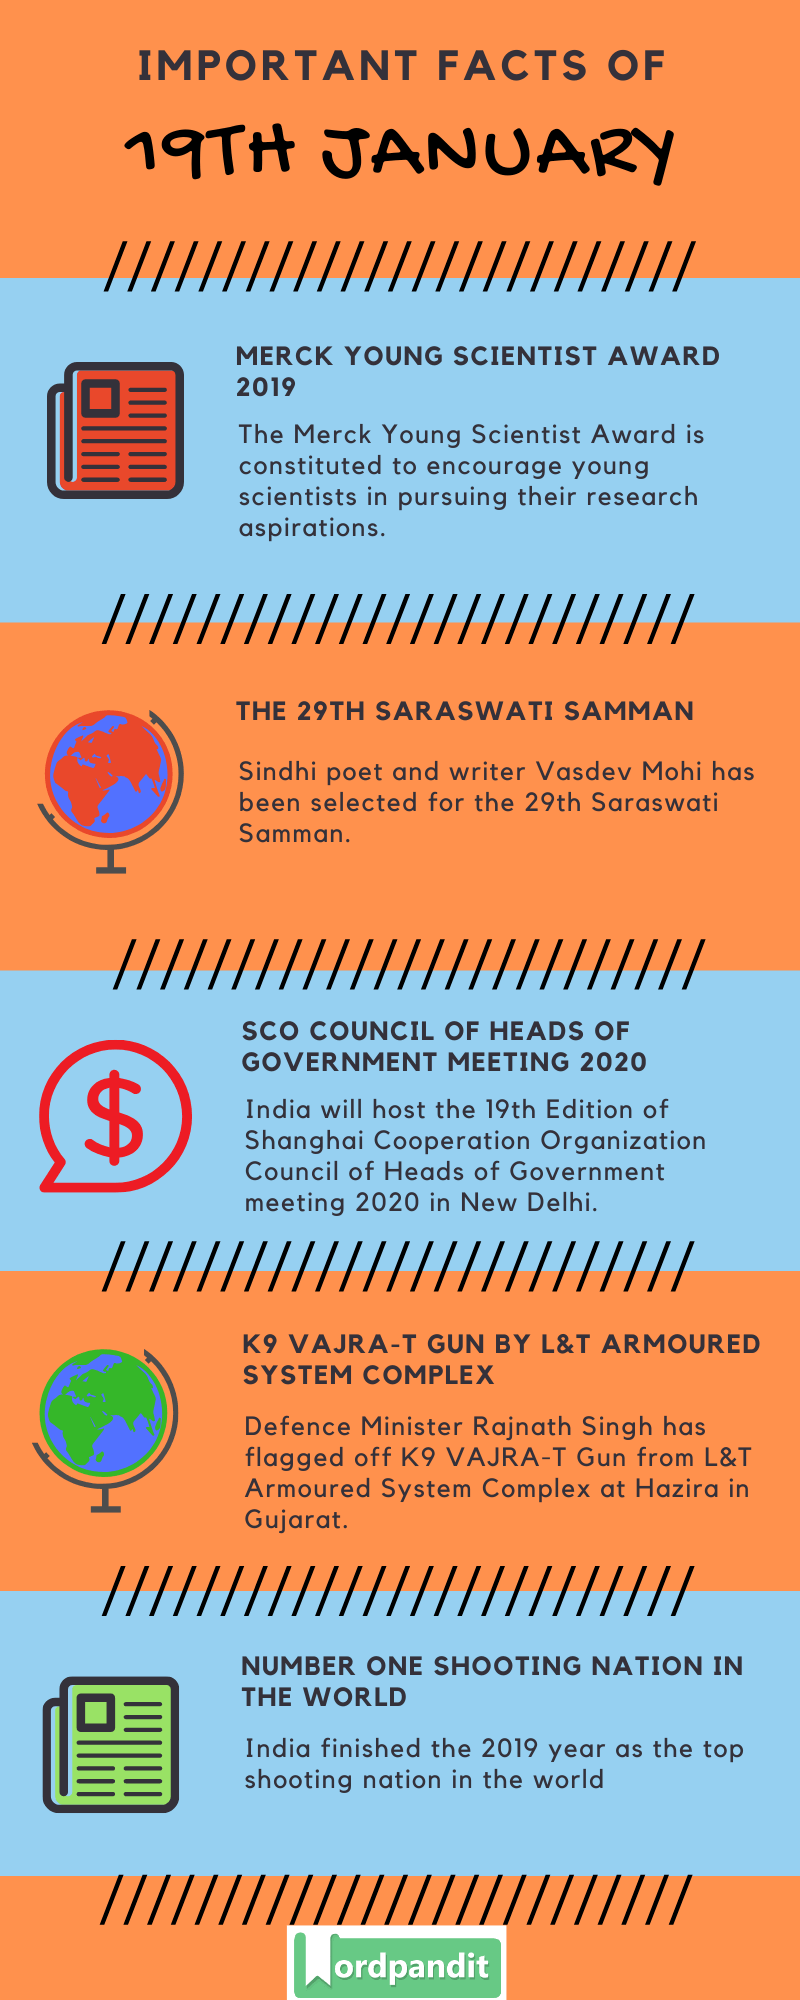 Daily Current Affairs 19 January 2020 Current Affairs Quiz 19 January 2020 Current Affairs Infographic